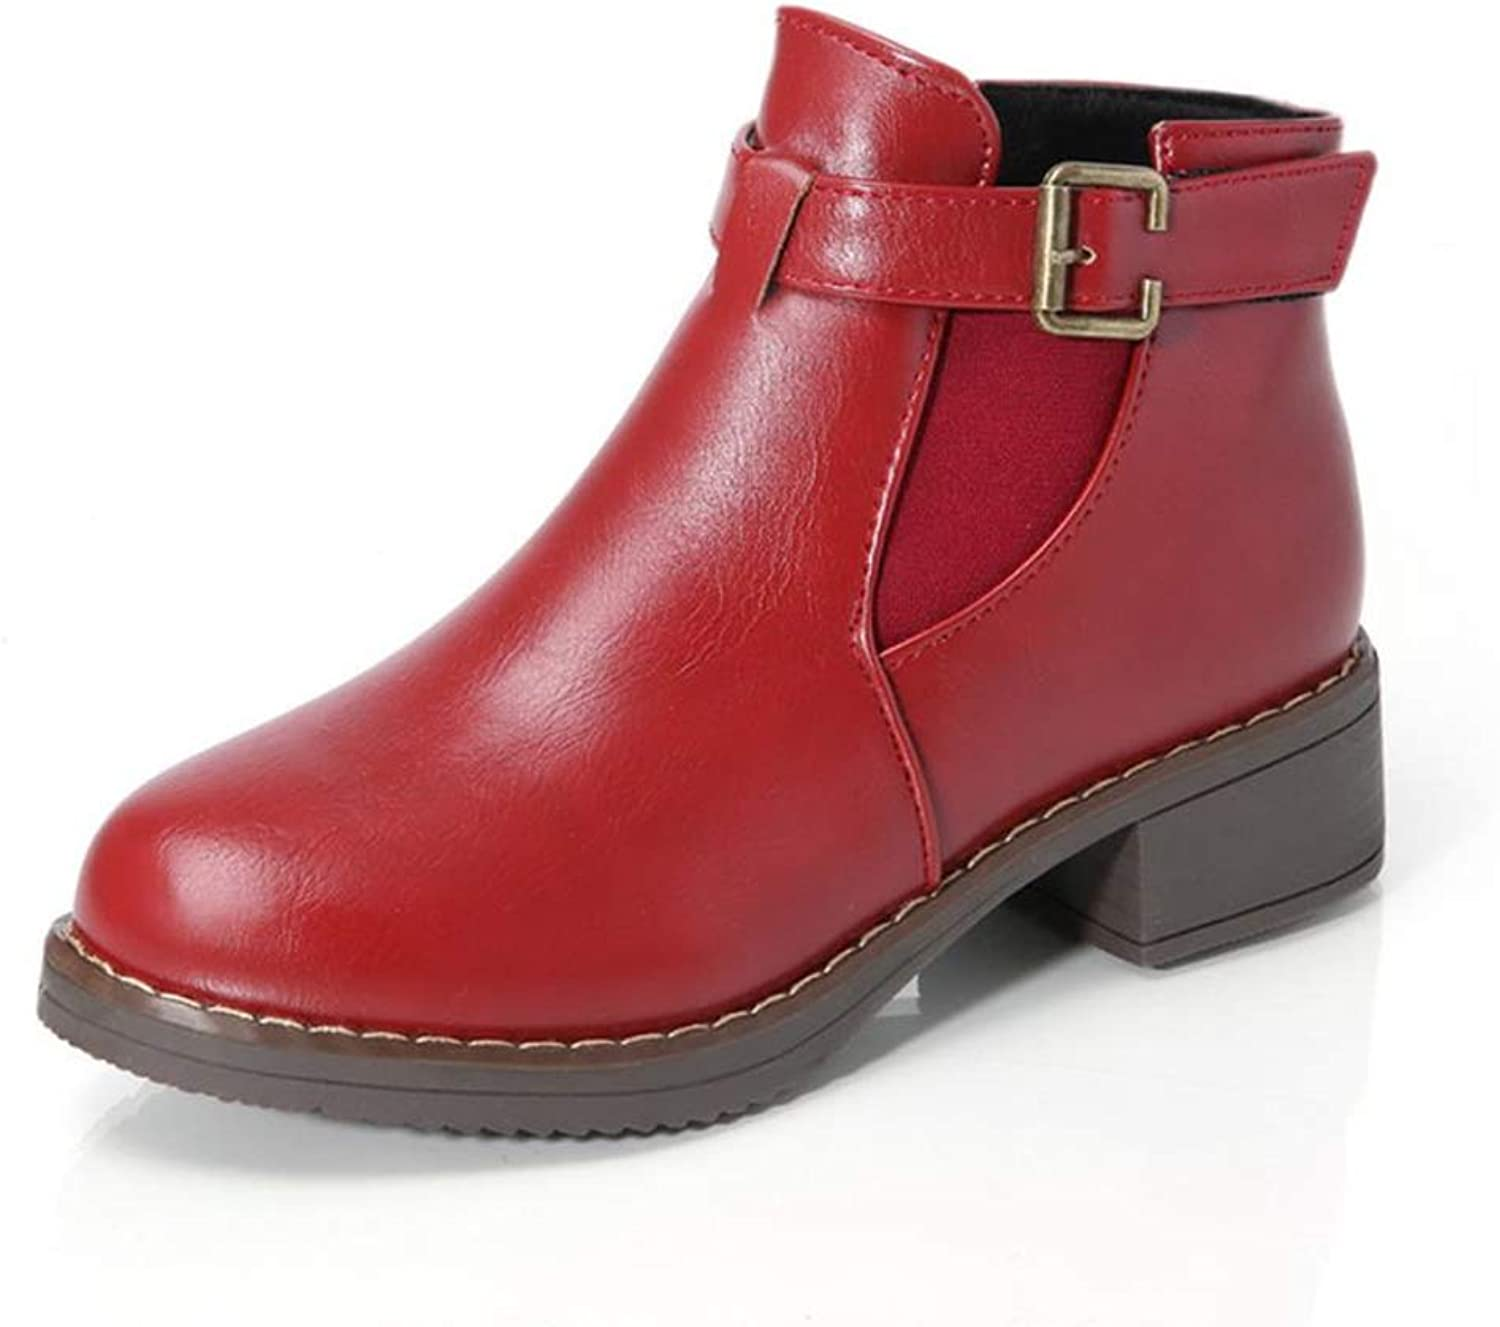 Cici shoes Women's Winter Fasion Ankle Boots